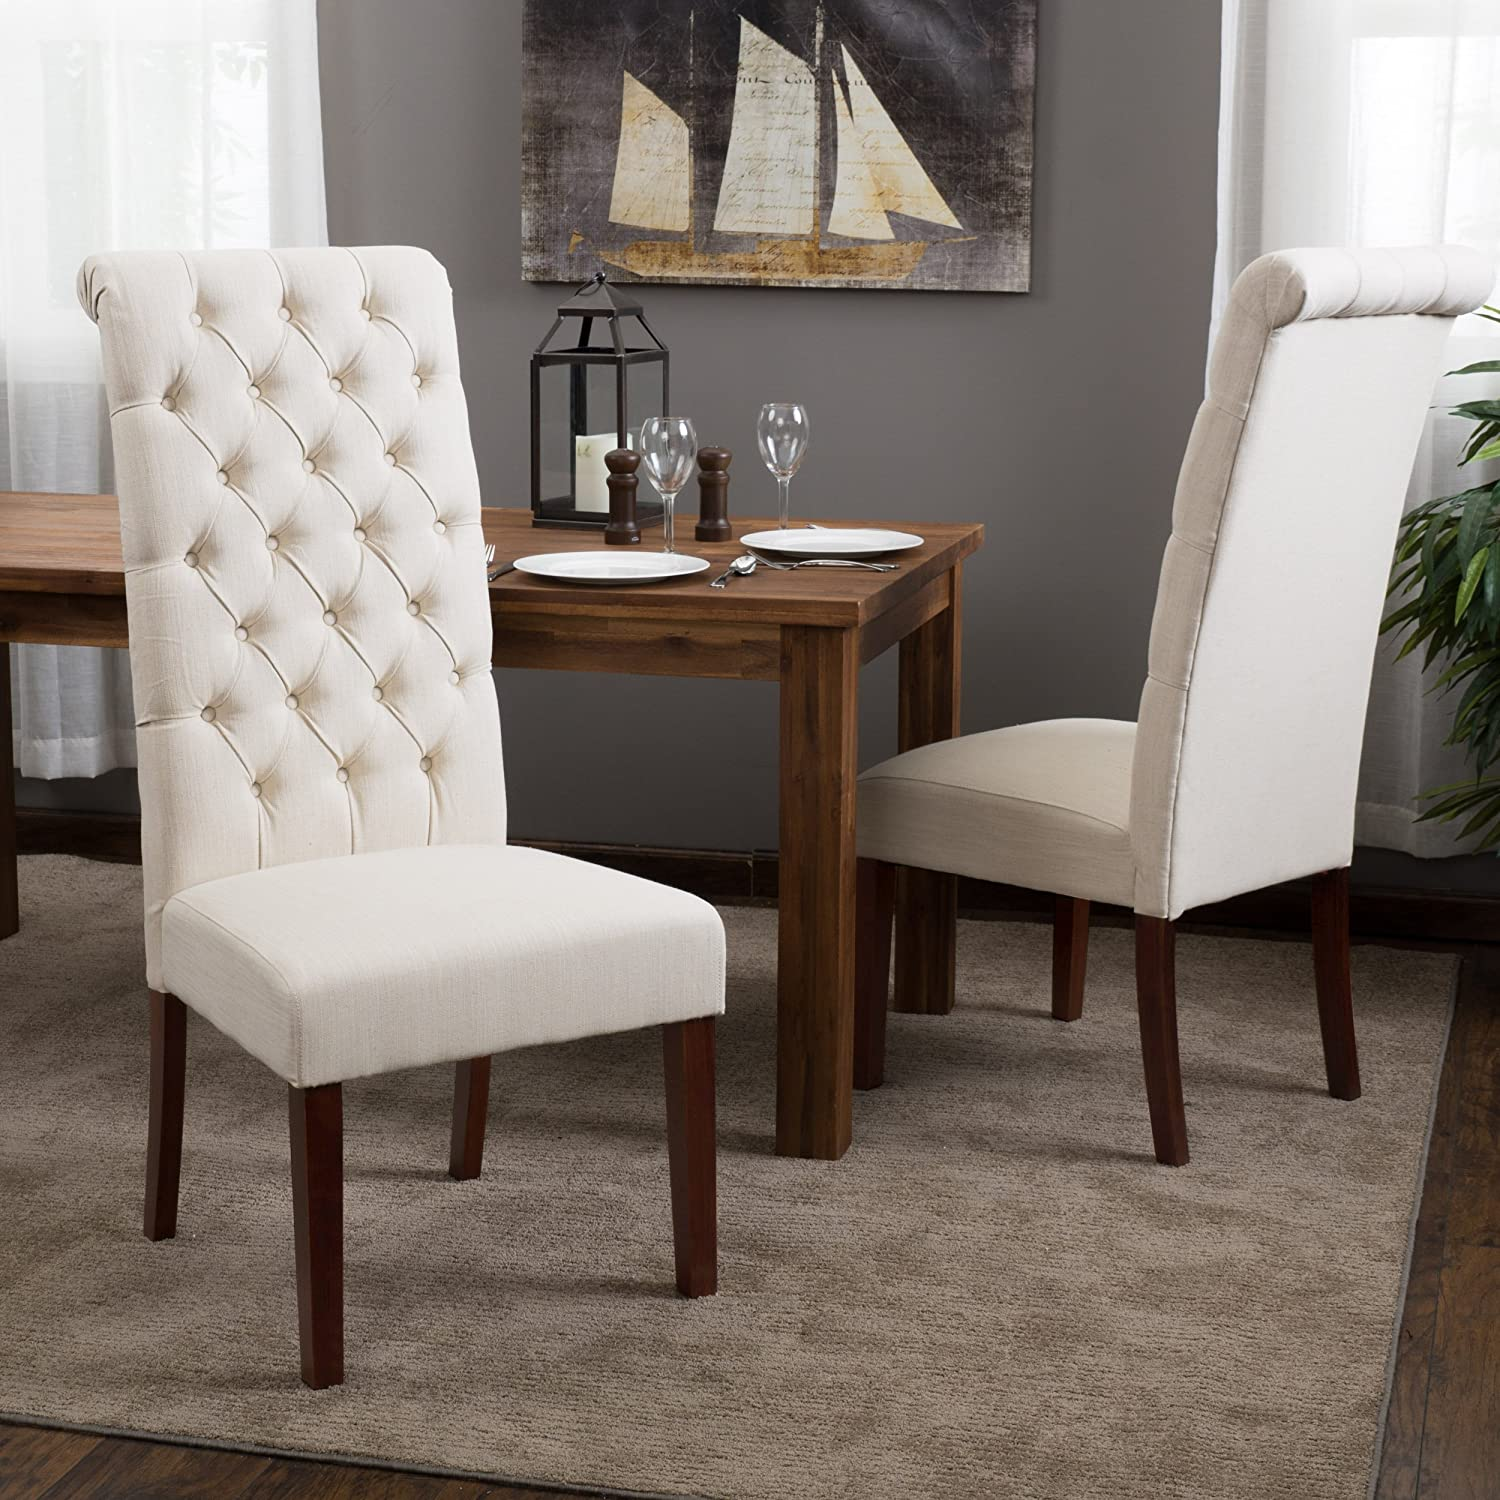 tufted dining bench with back amazoncom best selling natural tall tufted dining chair  pack chairs